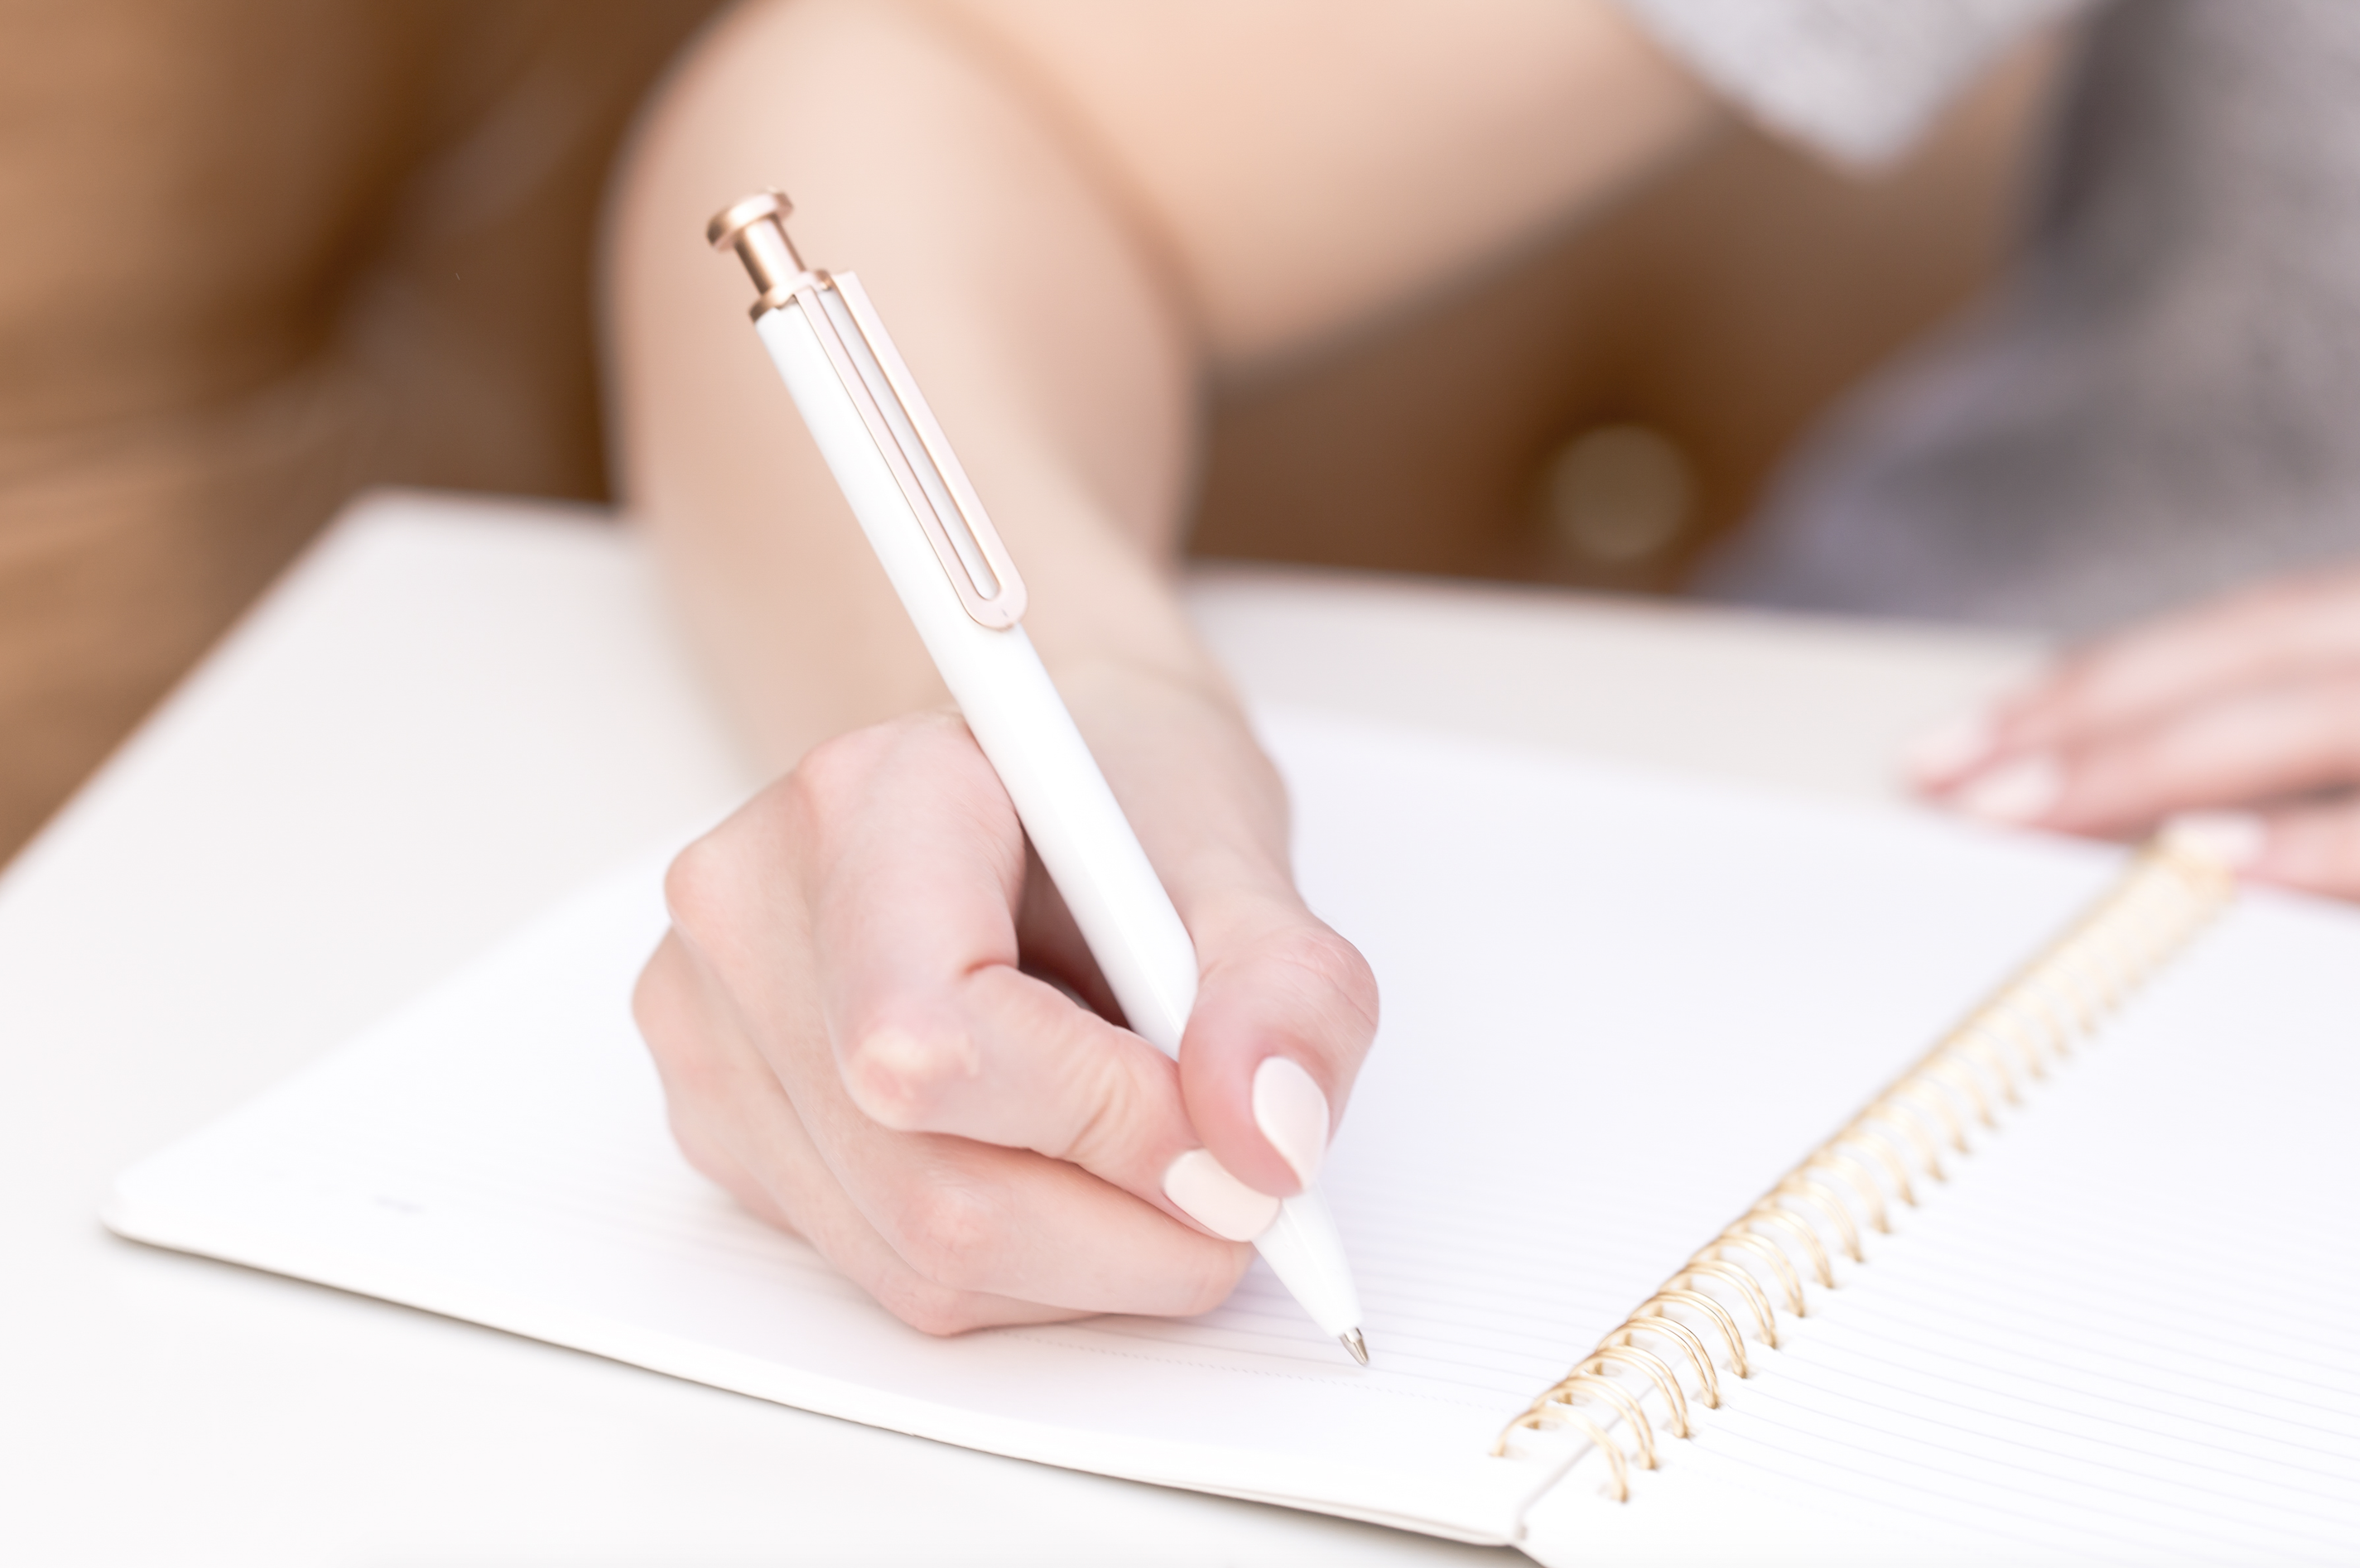 Making a to-do list is one way to combat procrastination